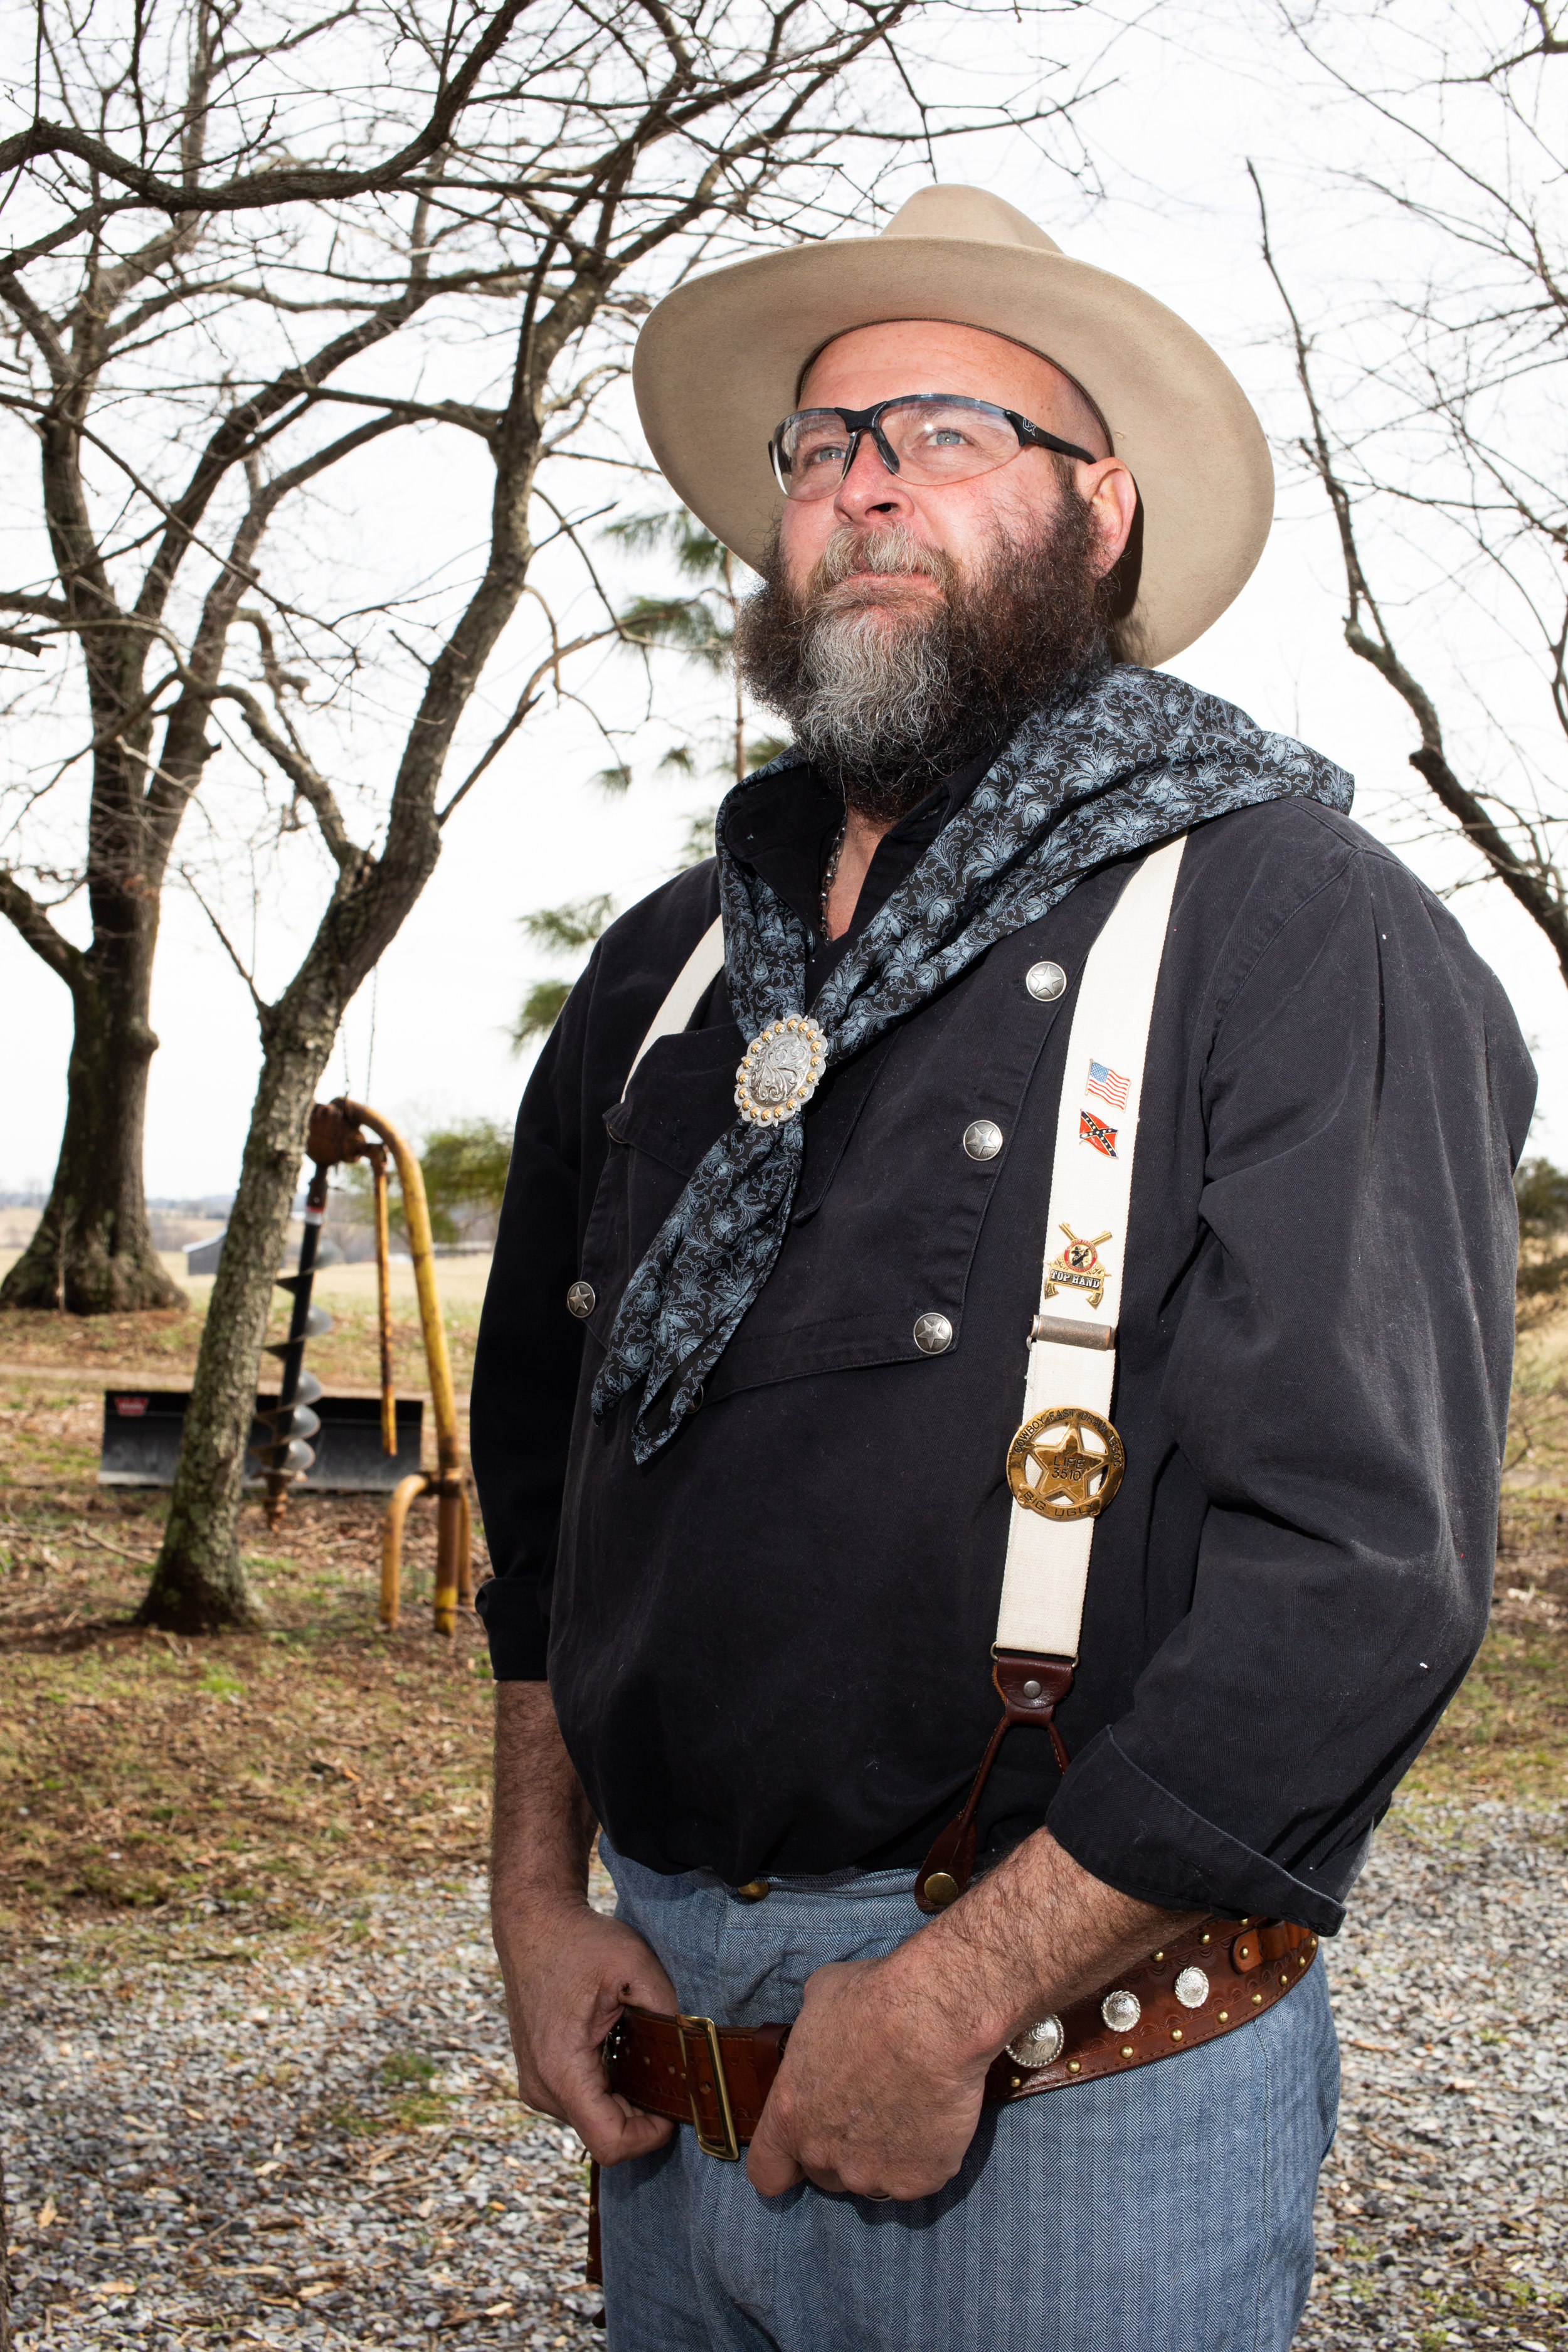 Scott Malone aka Big Ugly poses for a portrait during the Grandview Gunslingers Cowboy Fastdraw Tournament in Bedford, VA. The Gunslingers are a Sanctioned Club for the Cowboy Fast Draw Association with headquarters in Fallon, Nevada.